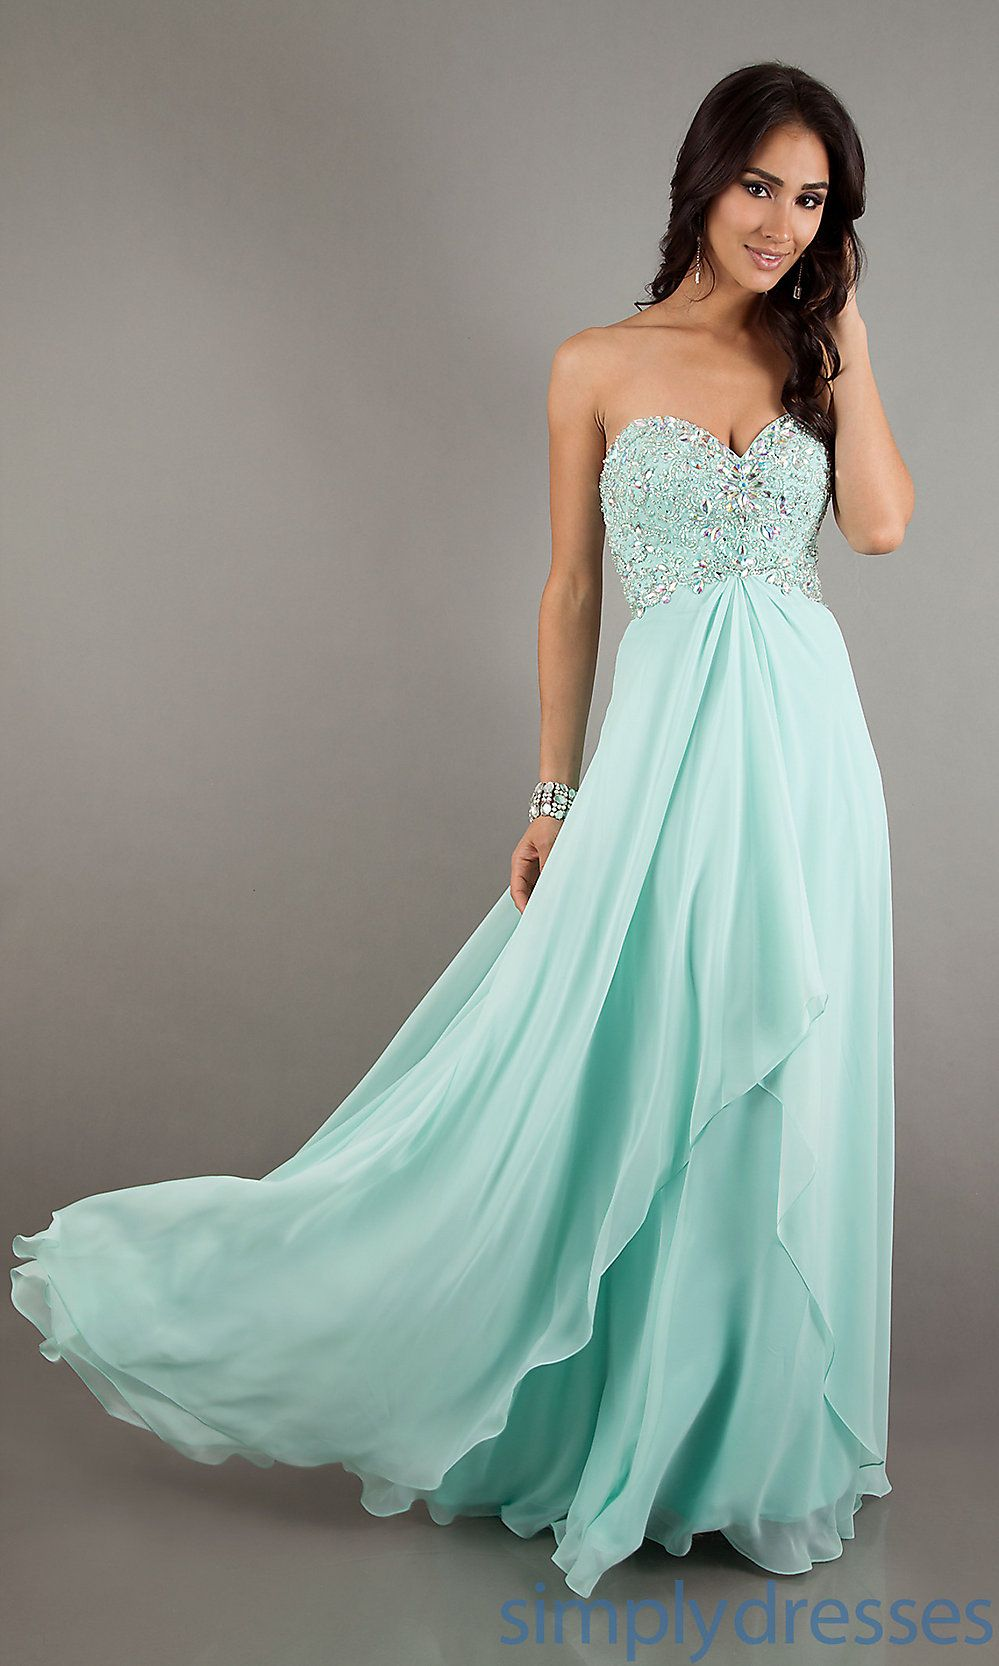 Simple A Line Light Blue Chiffon Lo - Long prom dresses- Gowns and ...